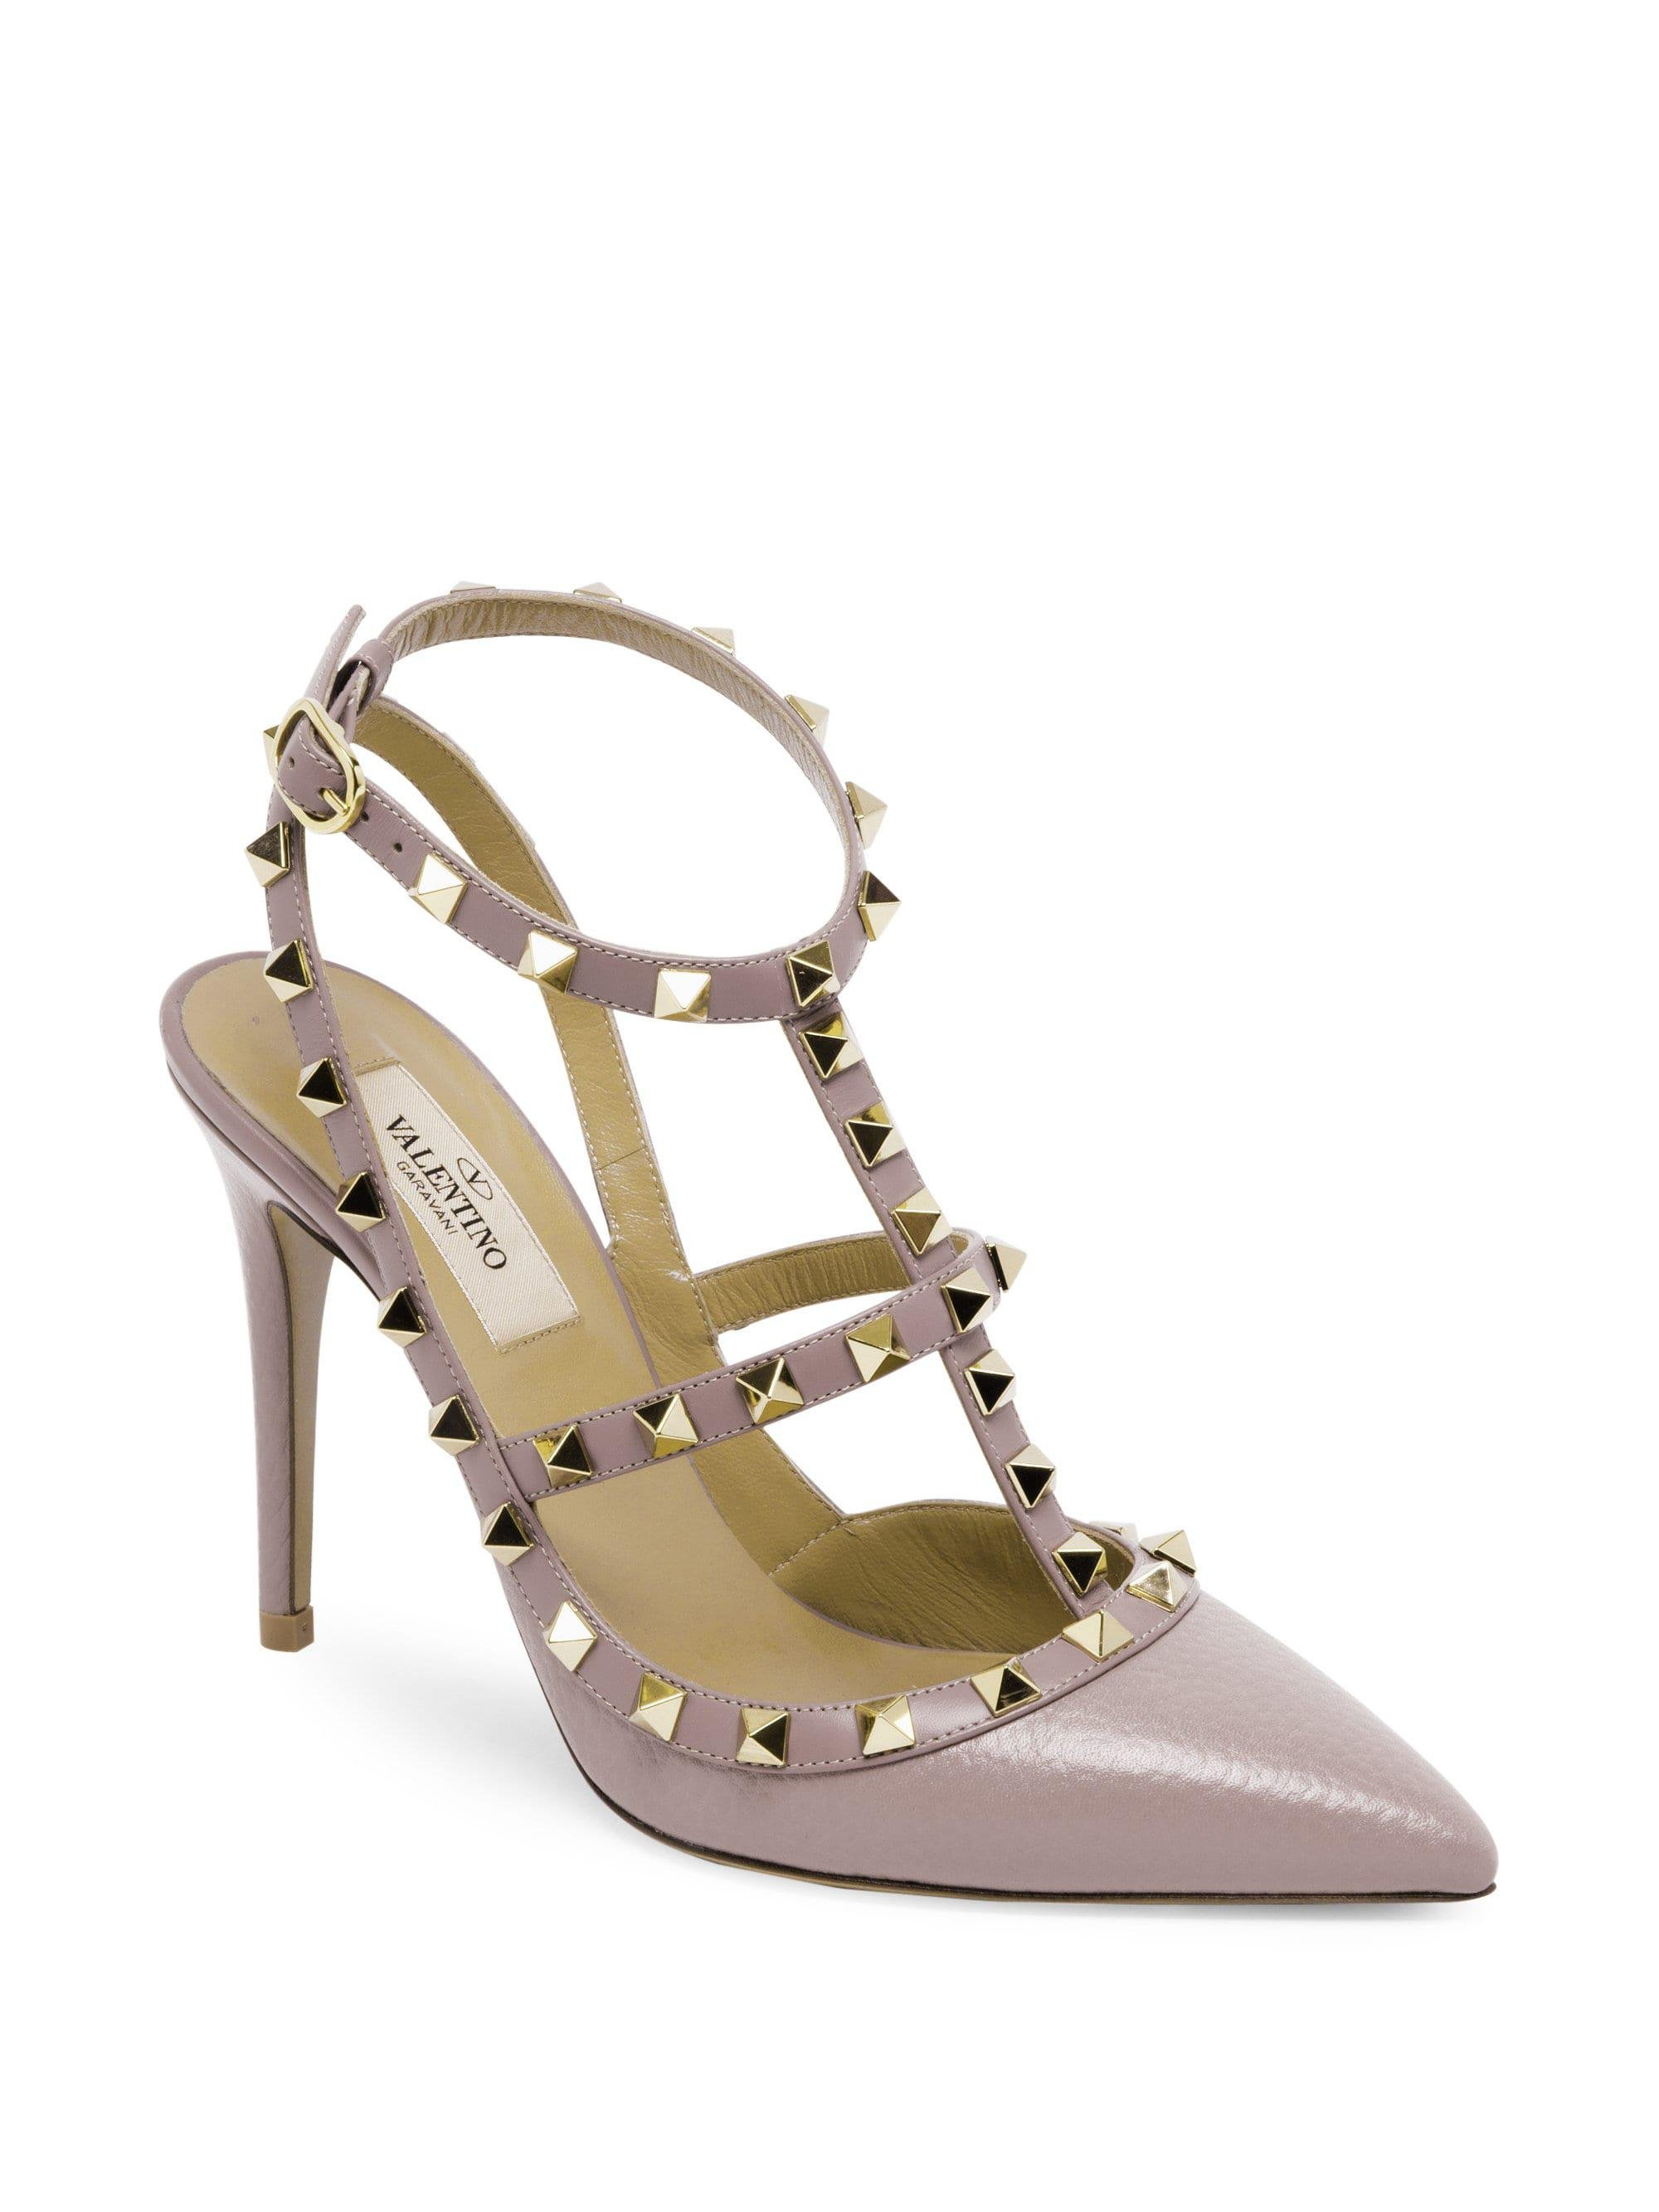 6596f2eec22 Valentino - Pink Rockstud Leather Ankle-strap Pumps - Lyst. View fullscreen